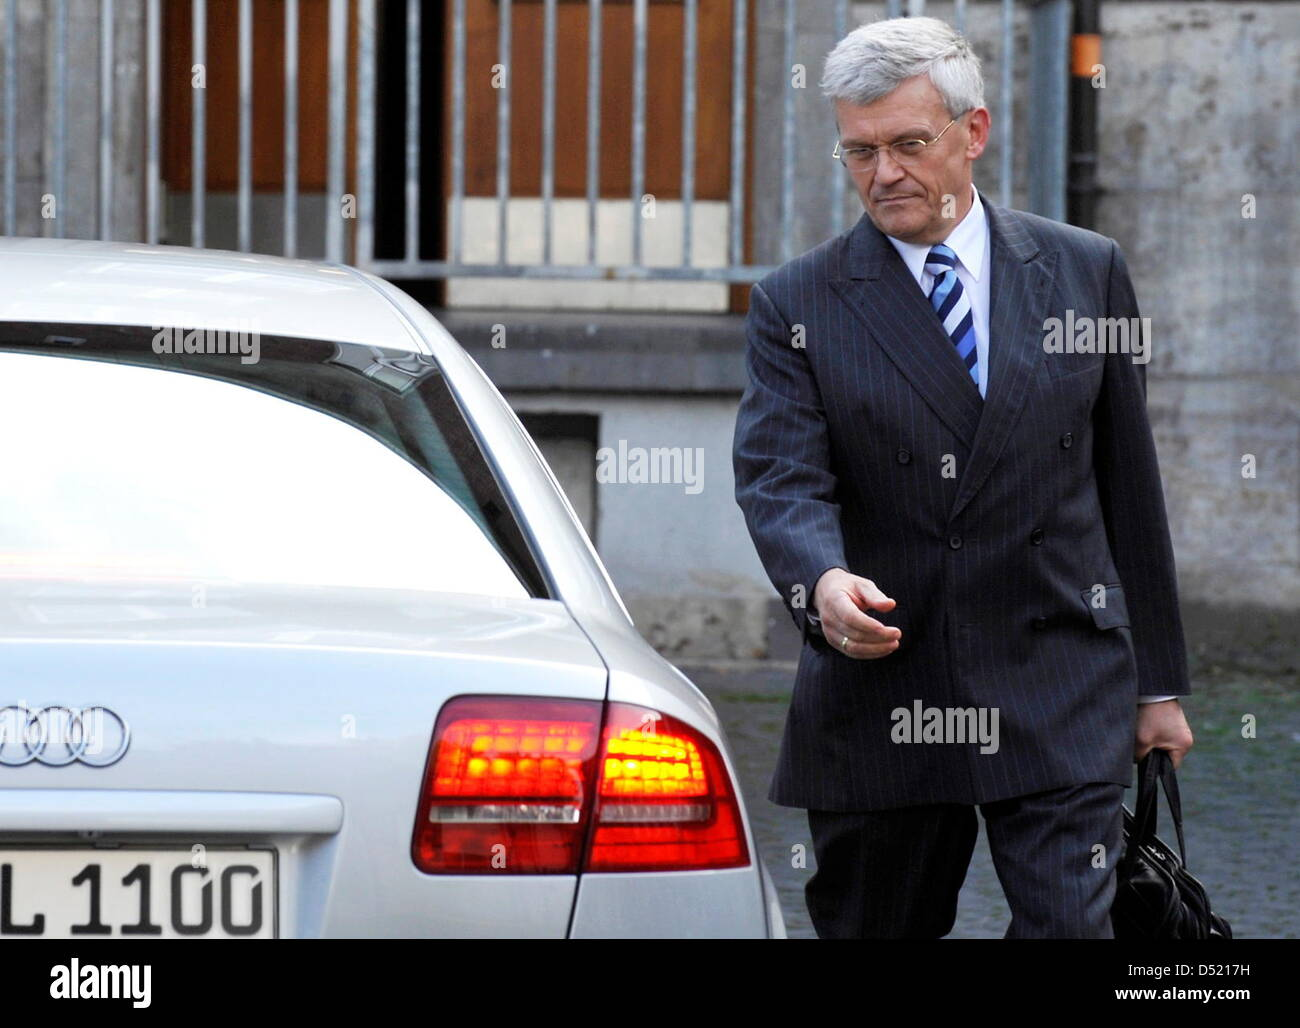 Head of the German construction company Hochtief, Herbert Luetkestratkoetter, leaves the ministry of economcs after - Stock Image